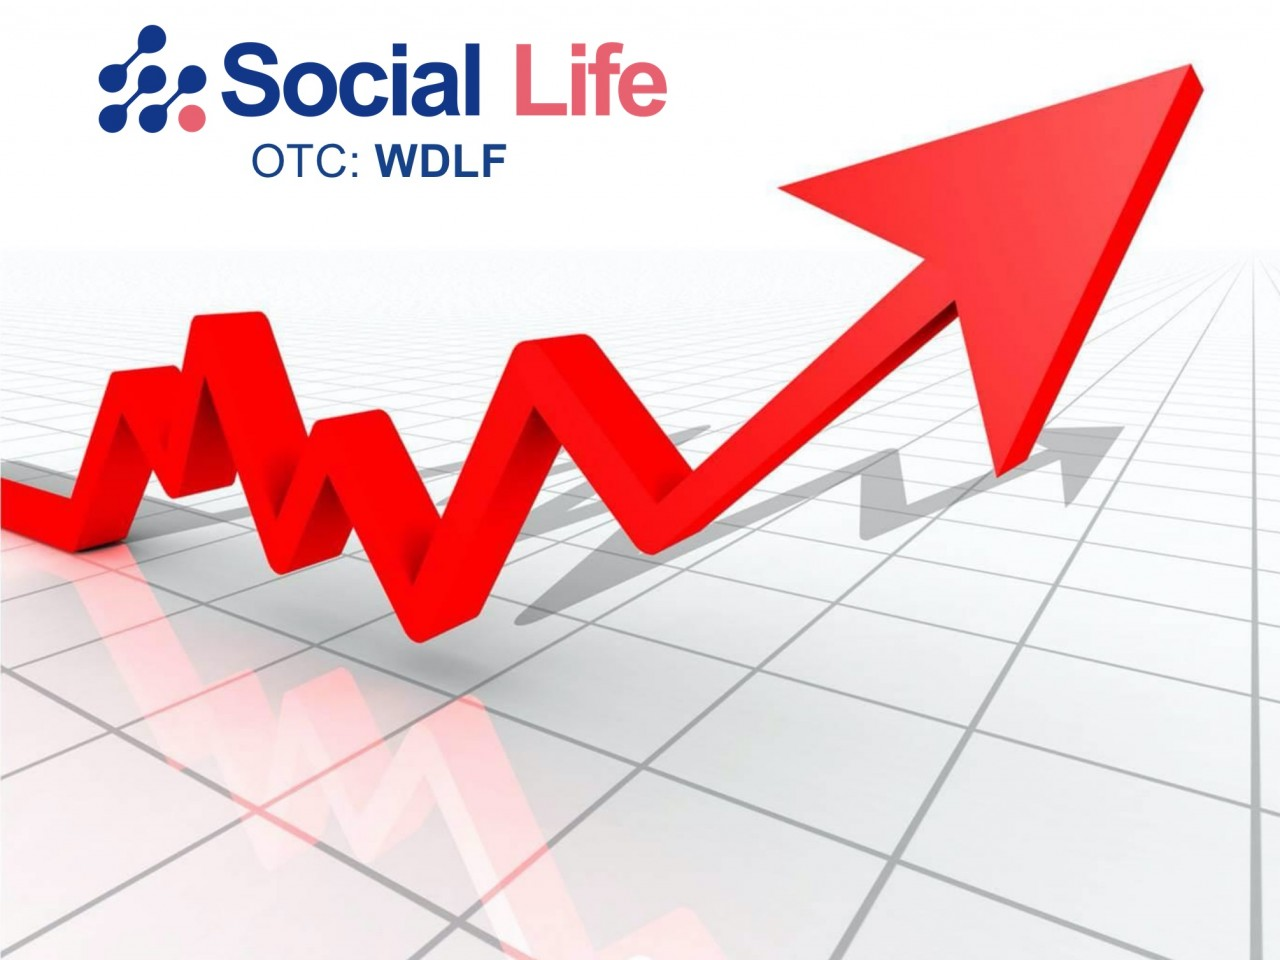 Social-Life-Network-OTC-WDLF-Update-Press-Release